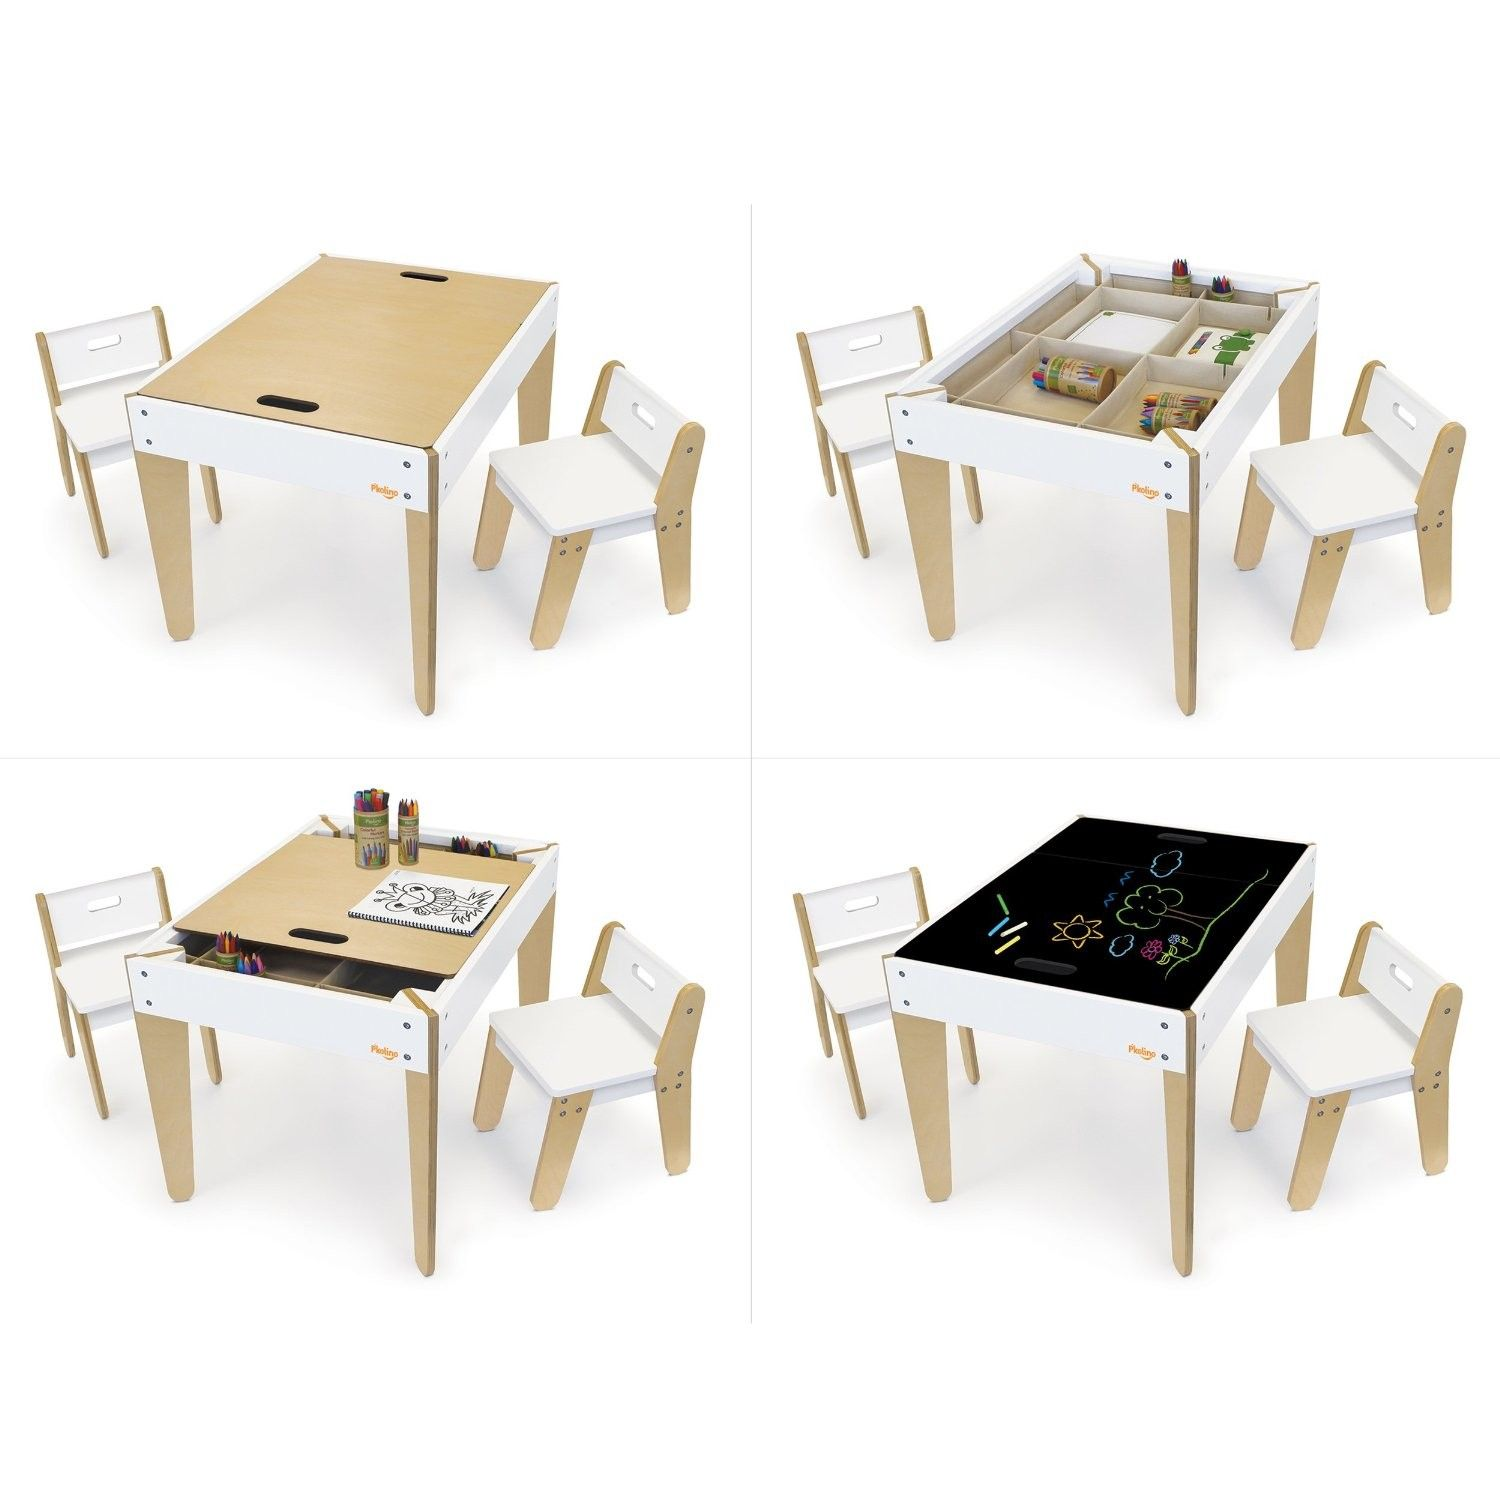 Pu0027kolino Modern Table and Chairs Pu0027kolino Modern